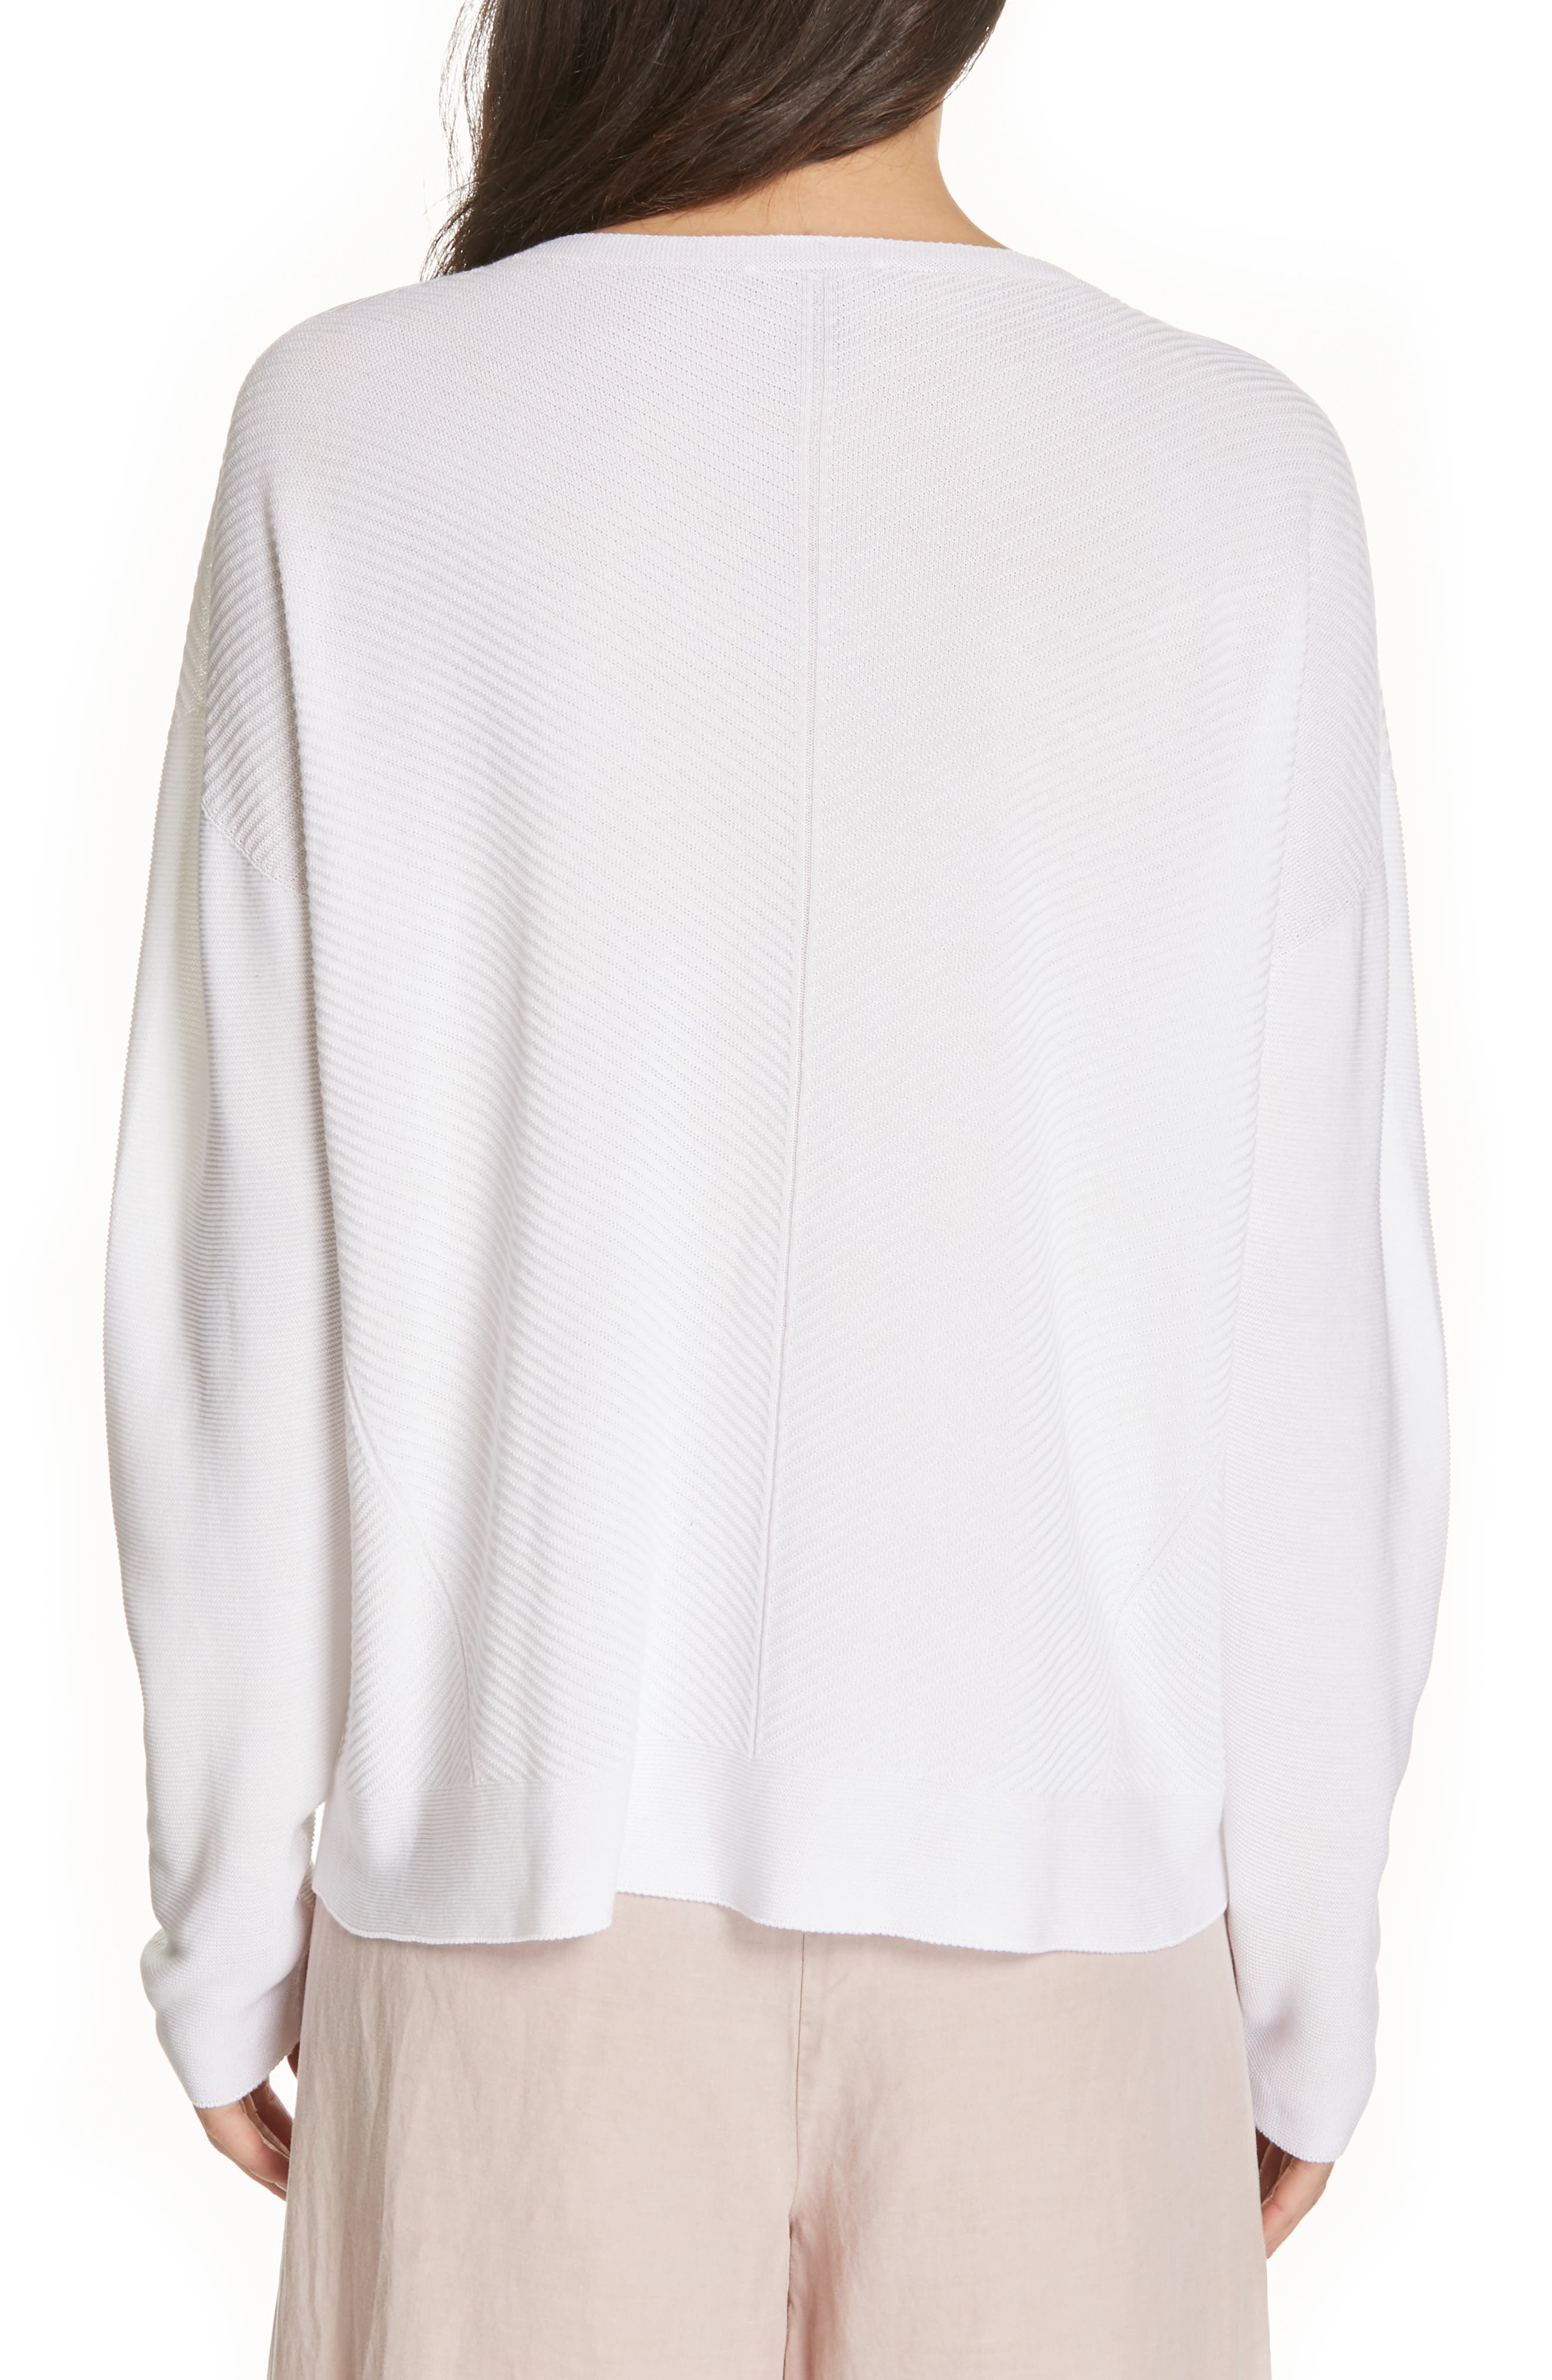 EILEEN FISHER, Round Neck Top, Alternate thumbnail 2, color, 103